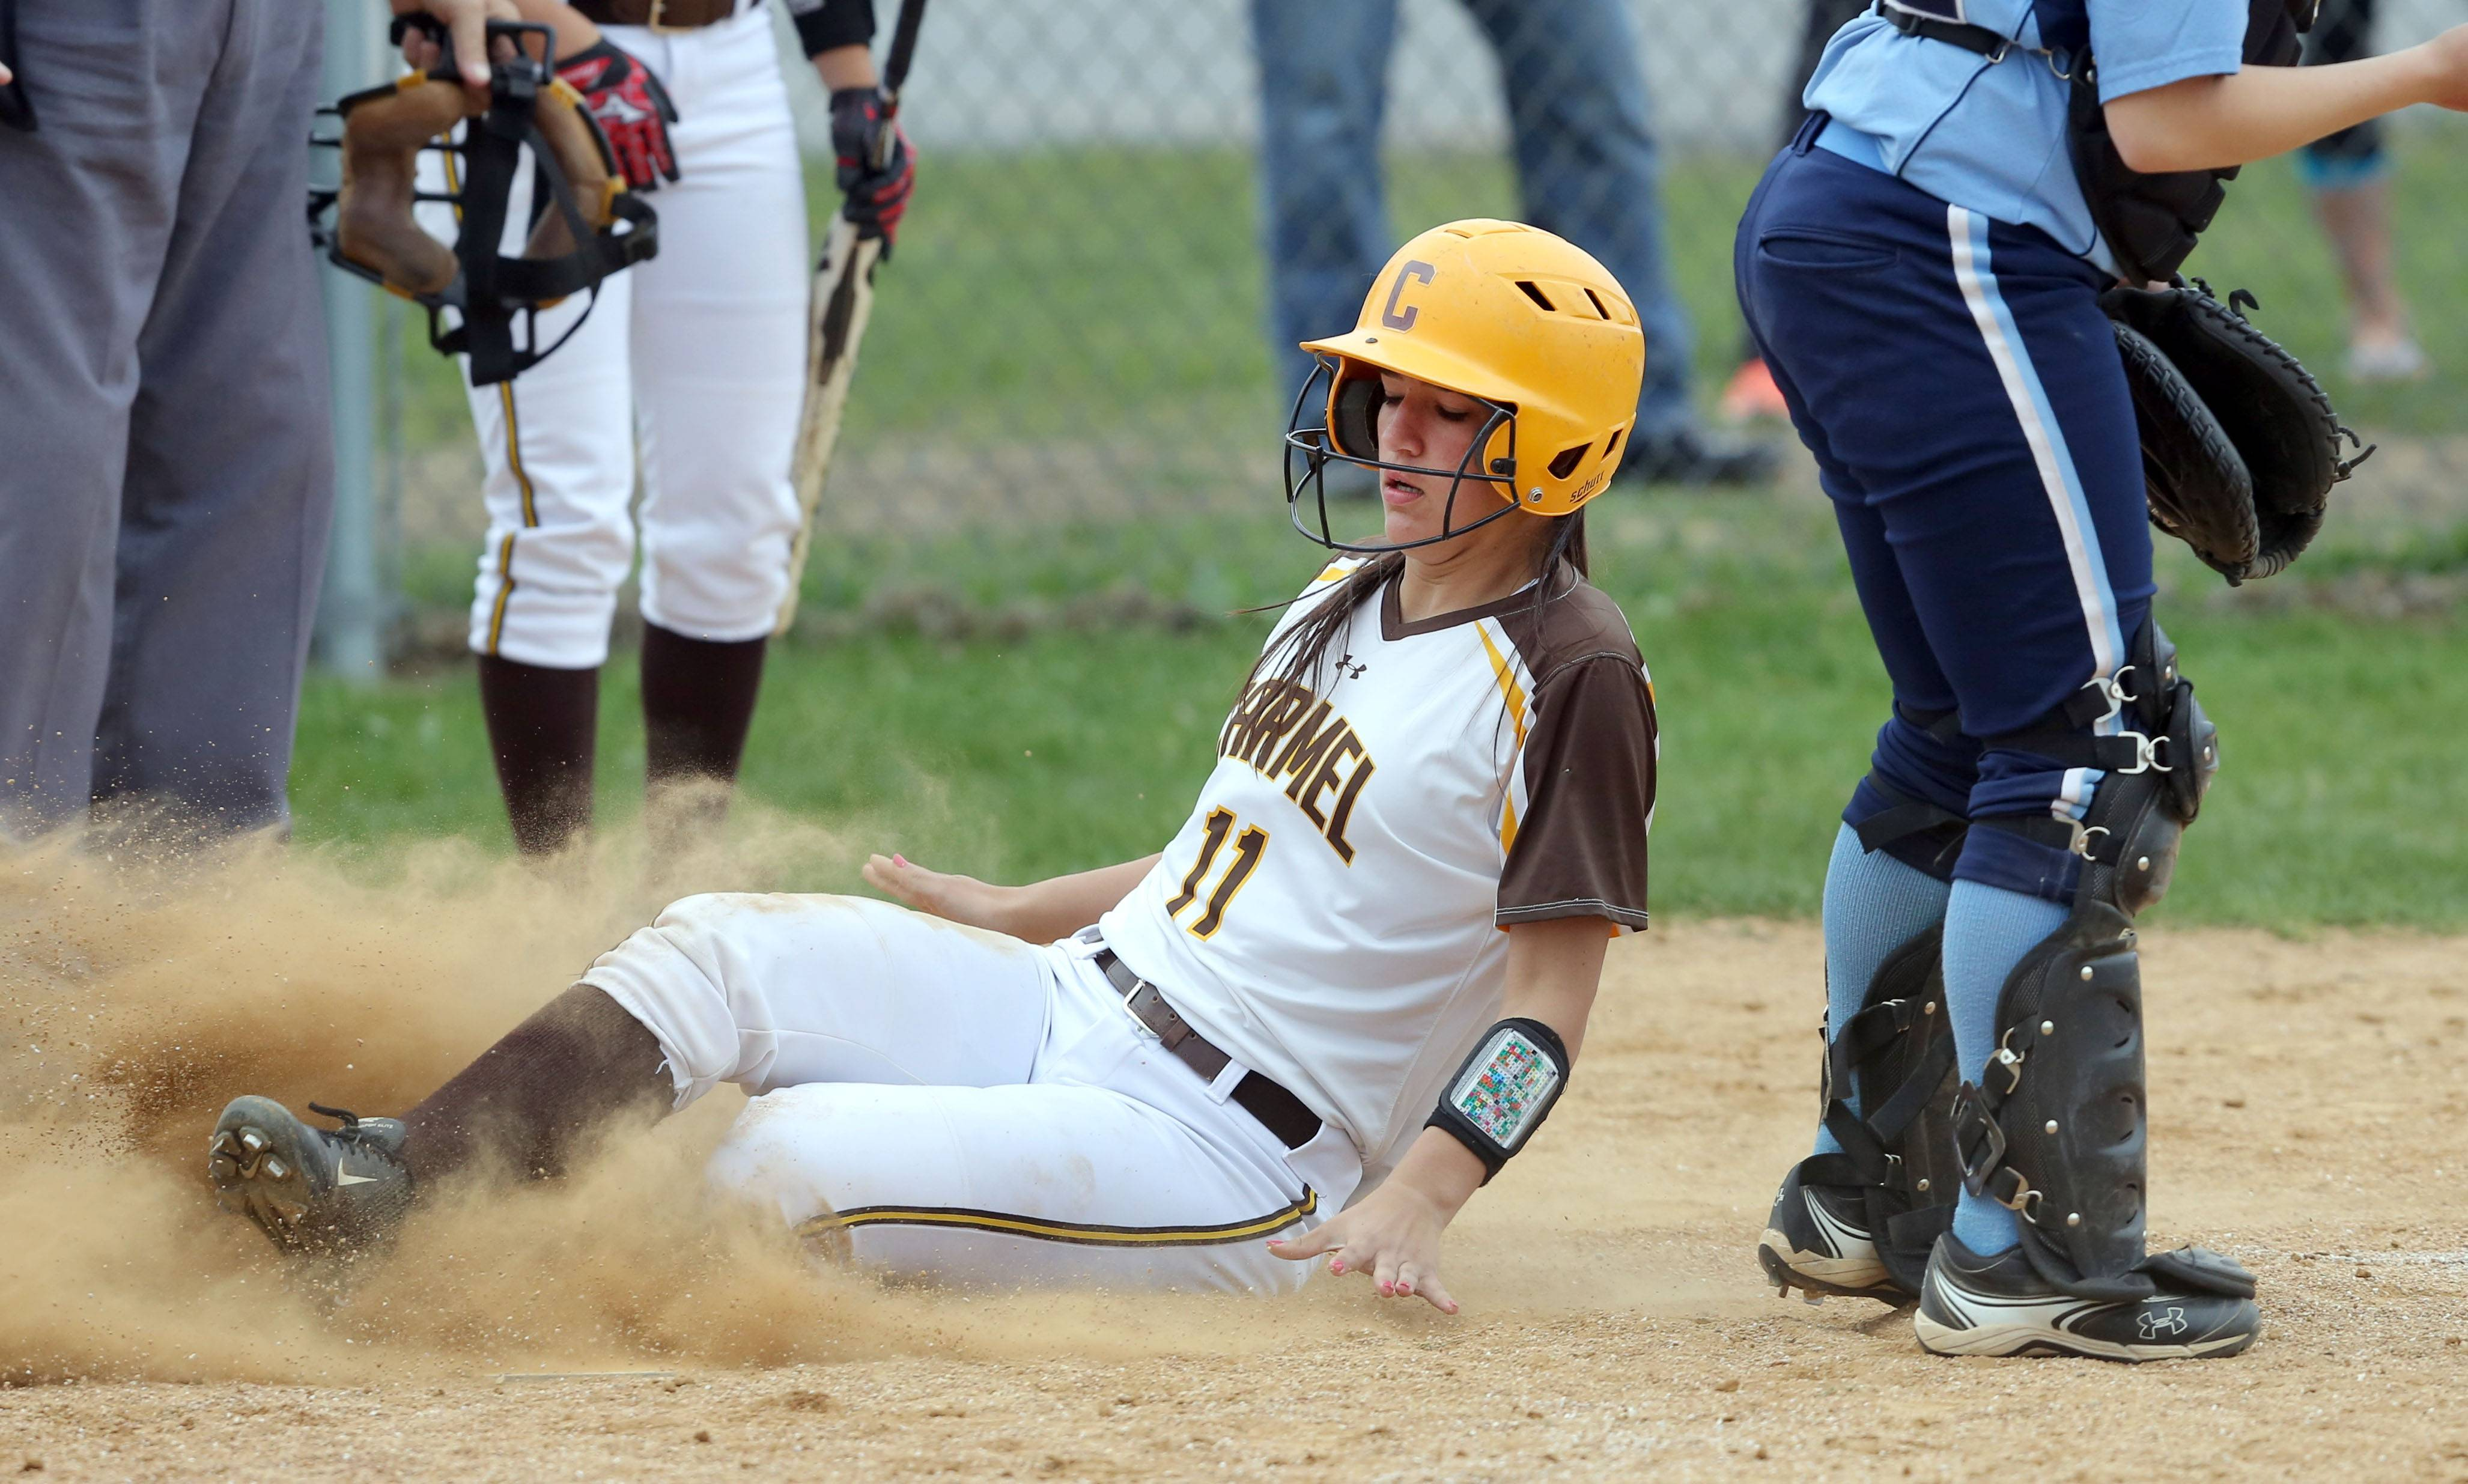 Carmel's Anne Poll scores against Nazareth on Wednesday in Mundelein.